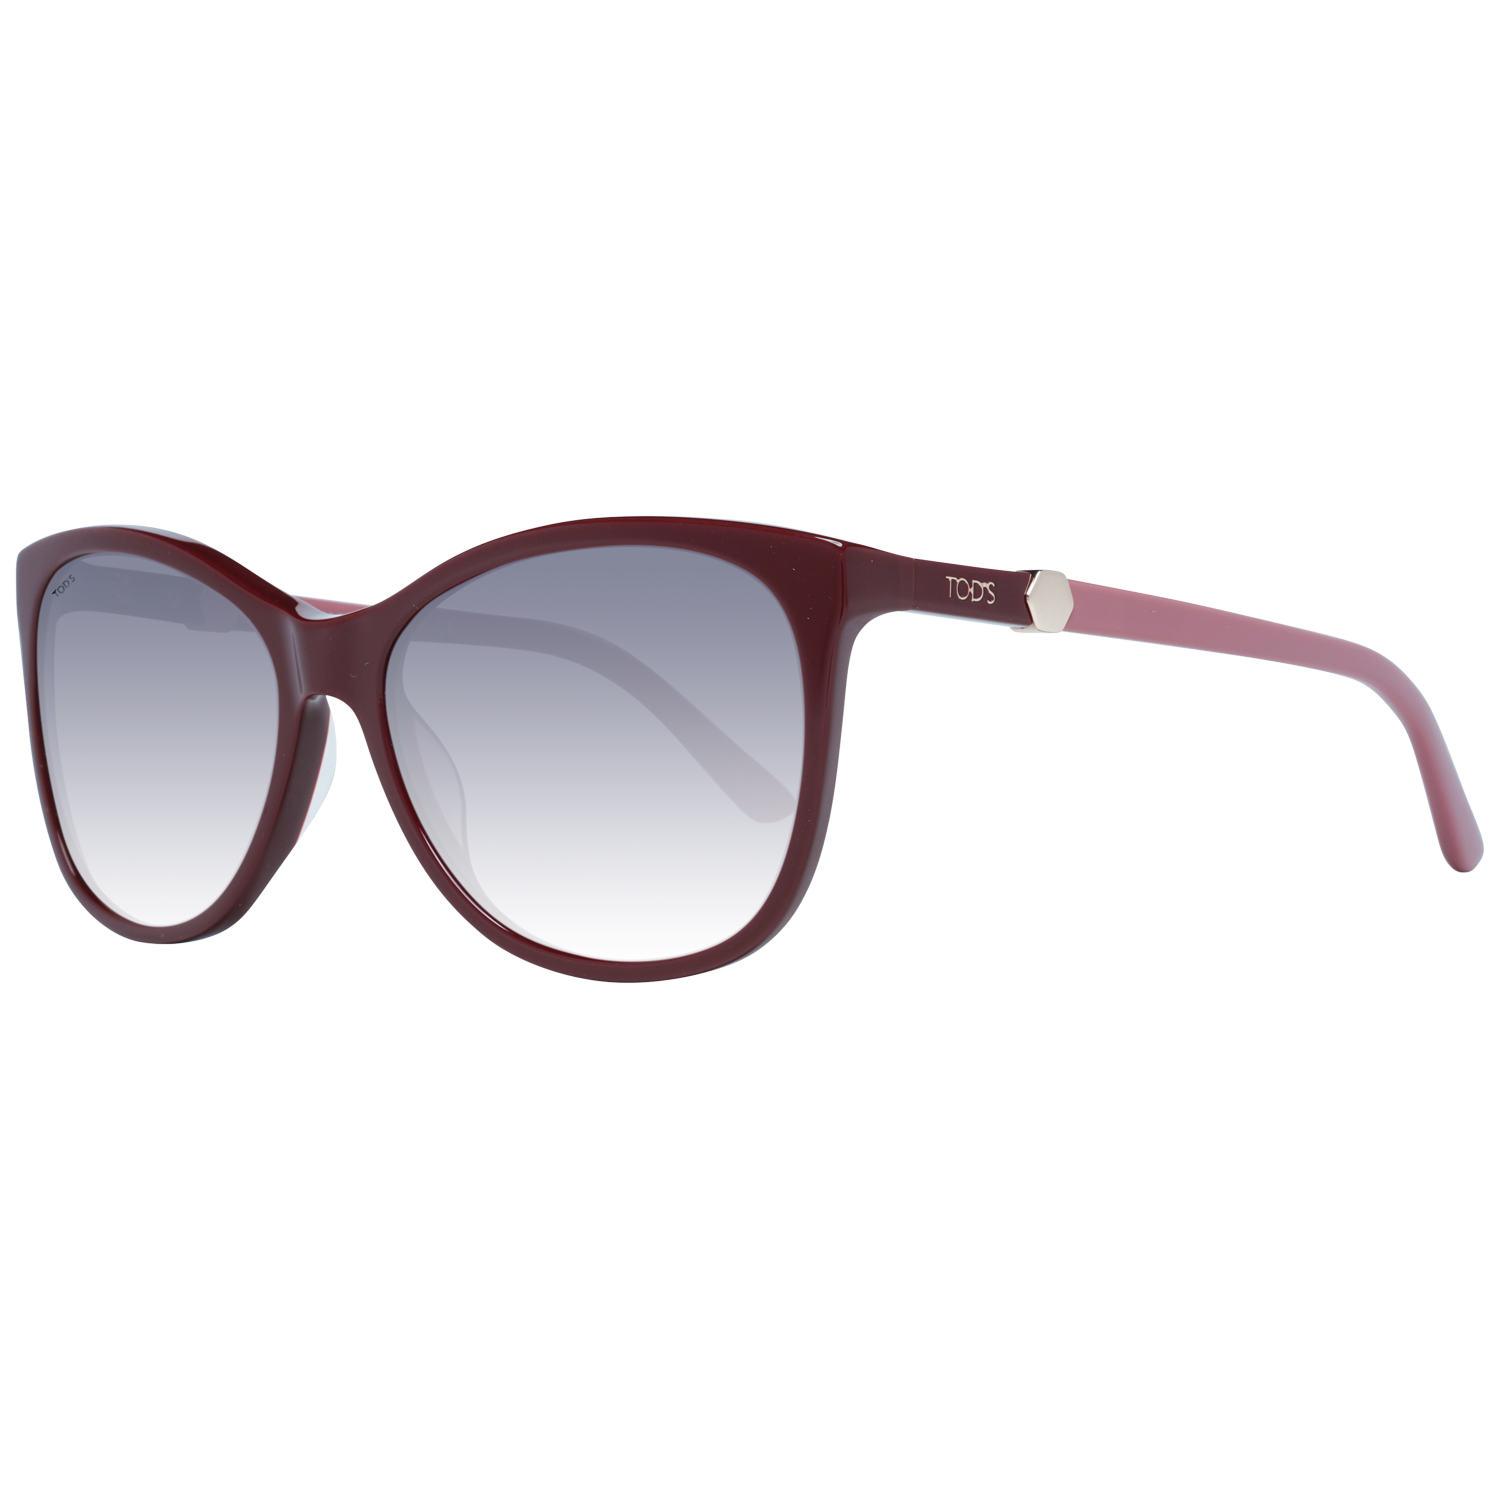 Tods Sunglasses TO0175 69Z 57 Red